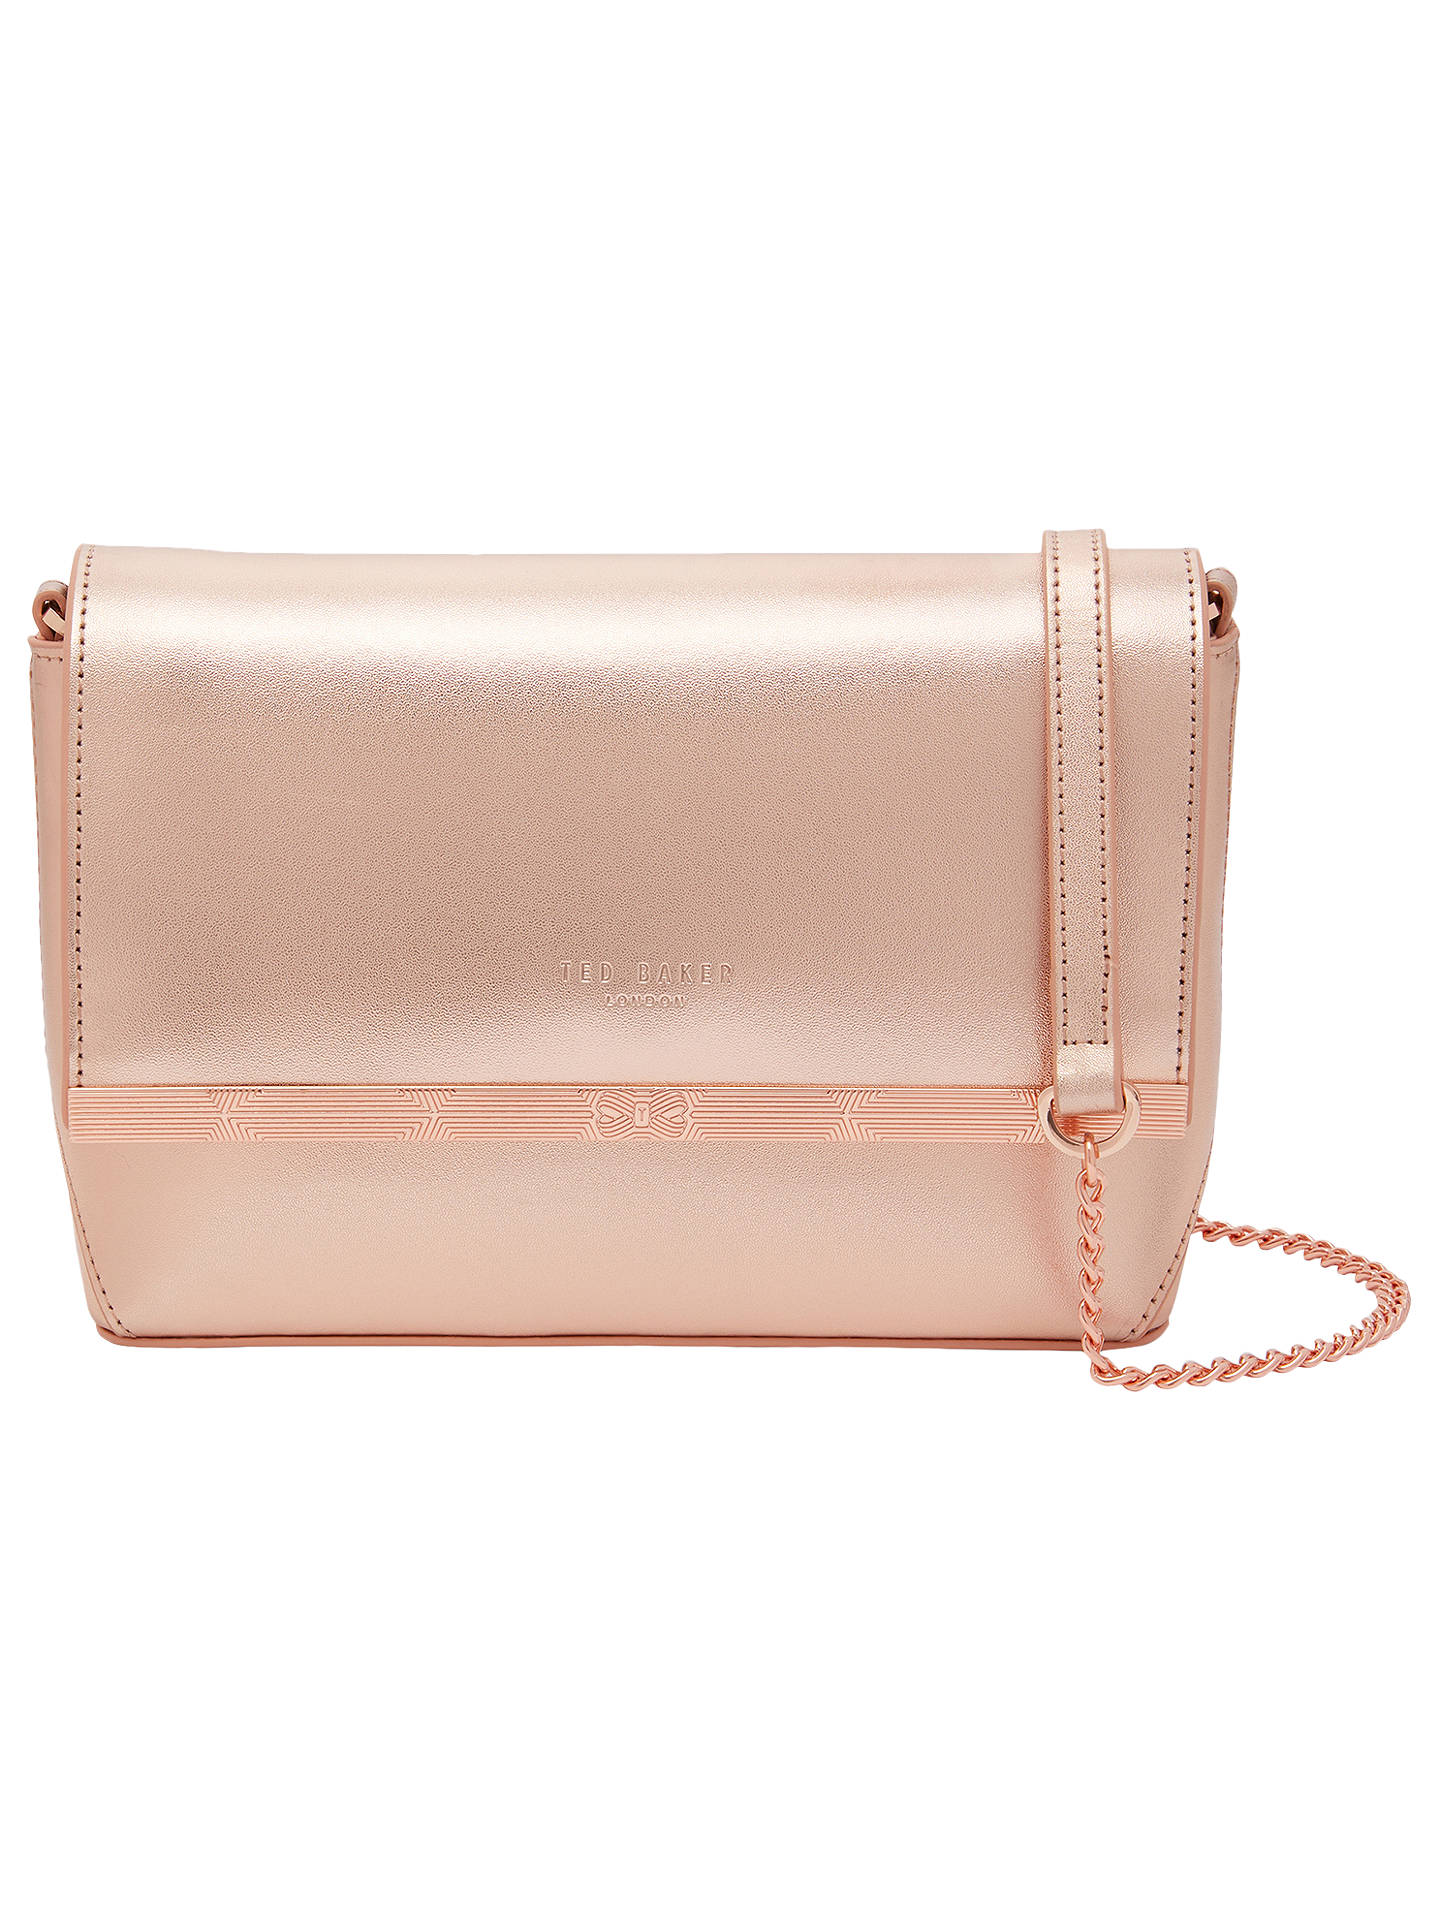 3d098fcce5c6 Buy Ted Baker Melisaa Leather Cross Body Bag